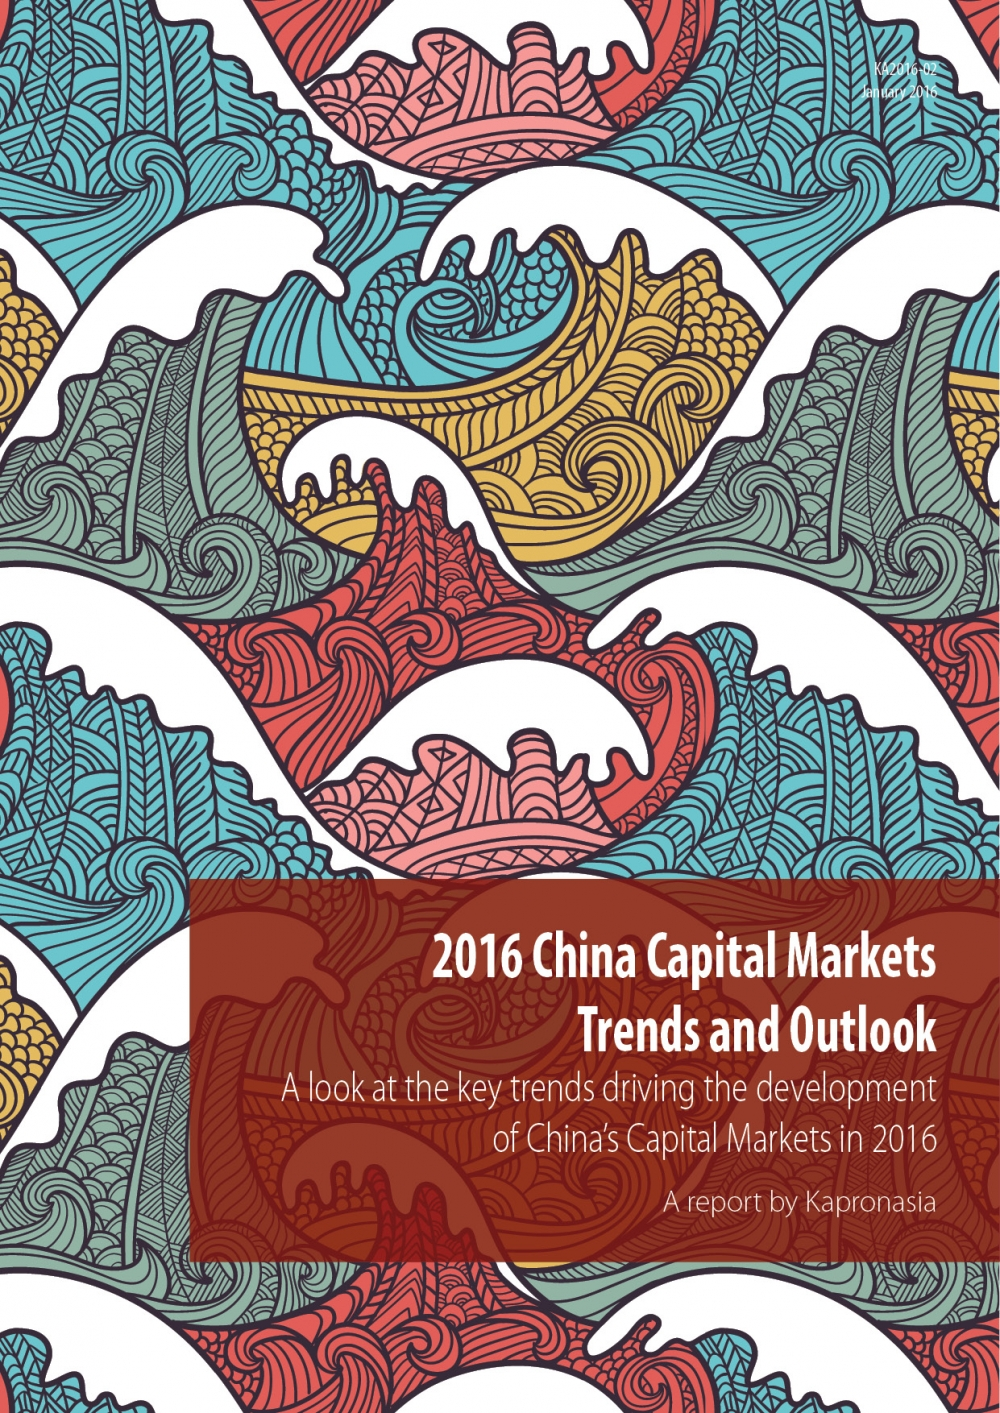 2016 China Capital Markets Trends and Outlook